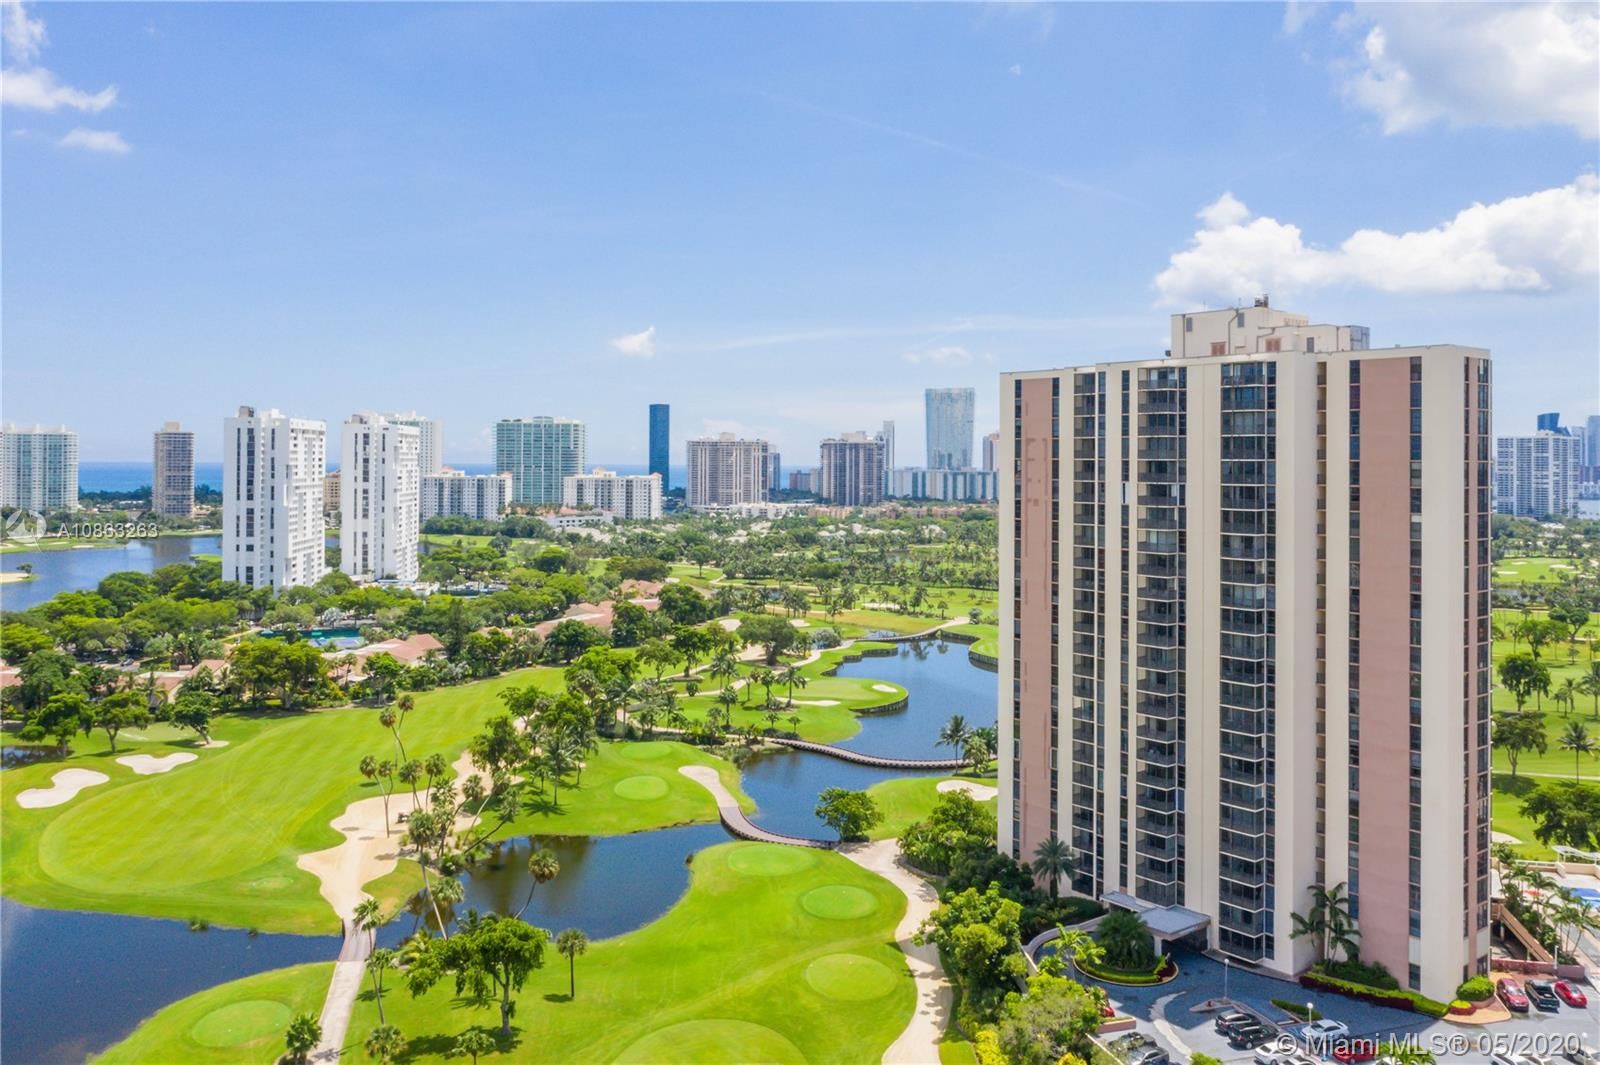 20301 W Country Club Dr #922 For Sale A10863263, FL